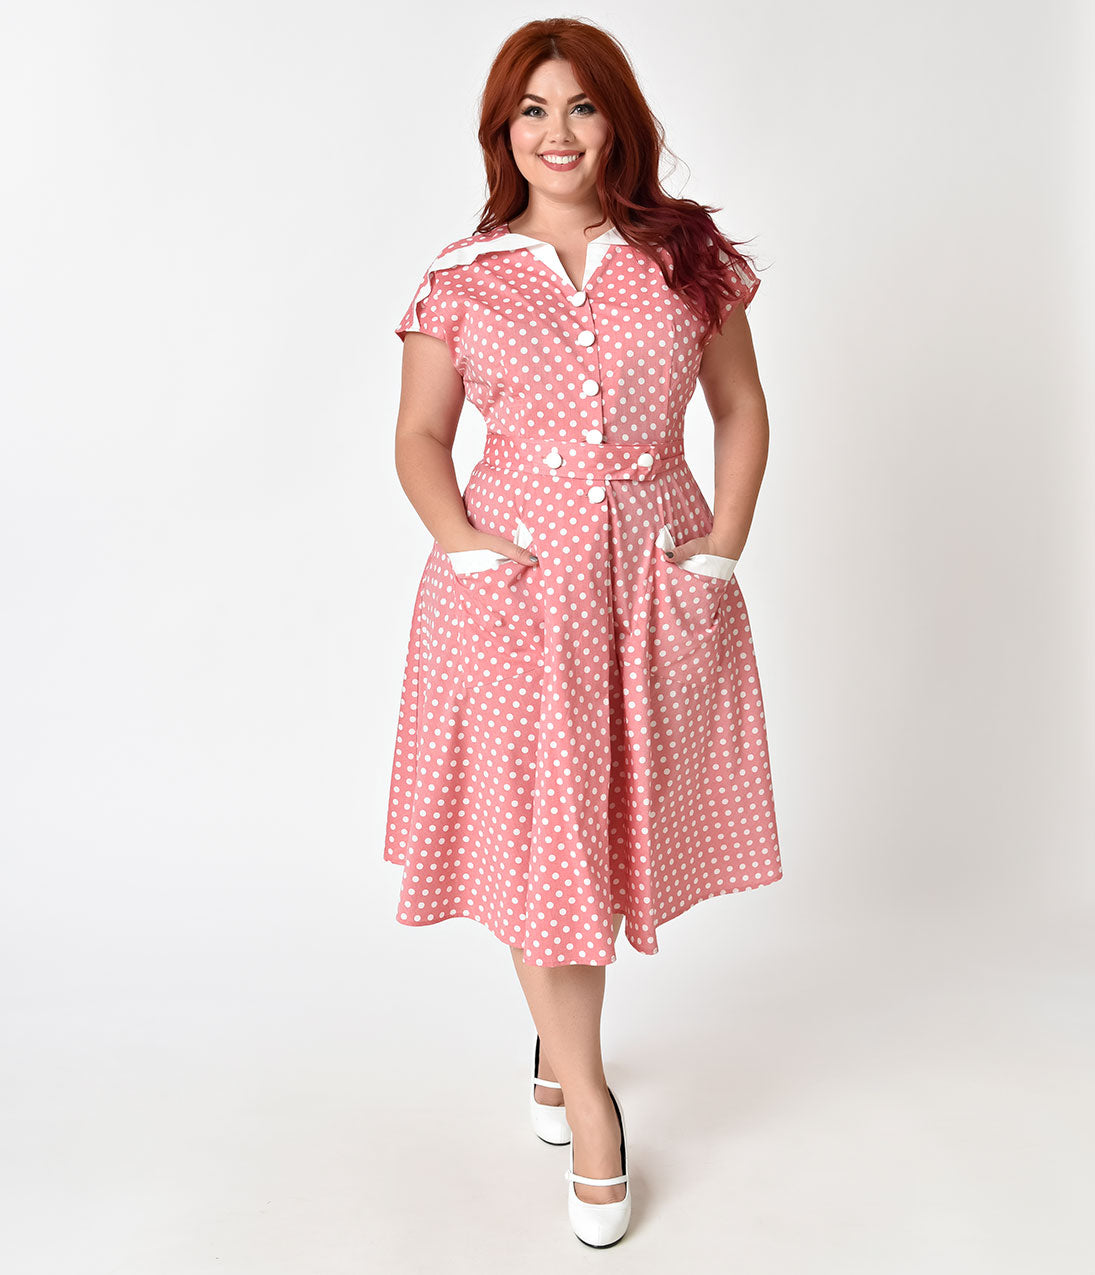 Polka Dot Dresses: 20s, 30s, 40s, 50s, 60s Unique Vintage Plus Size 1950S Light Red  Ivory Dotted Cap Sleeve Hedda Swing Dress $71.00 AT vintagedancer.com